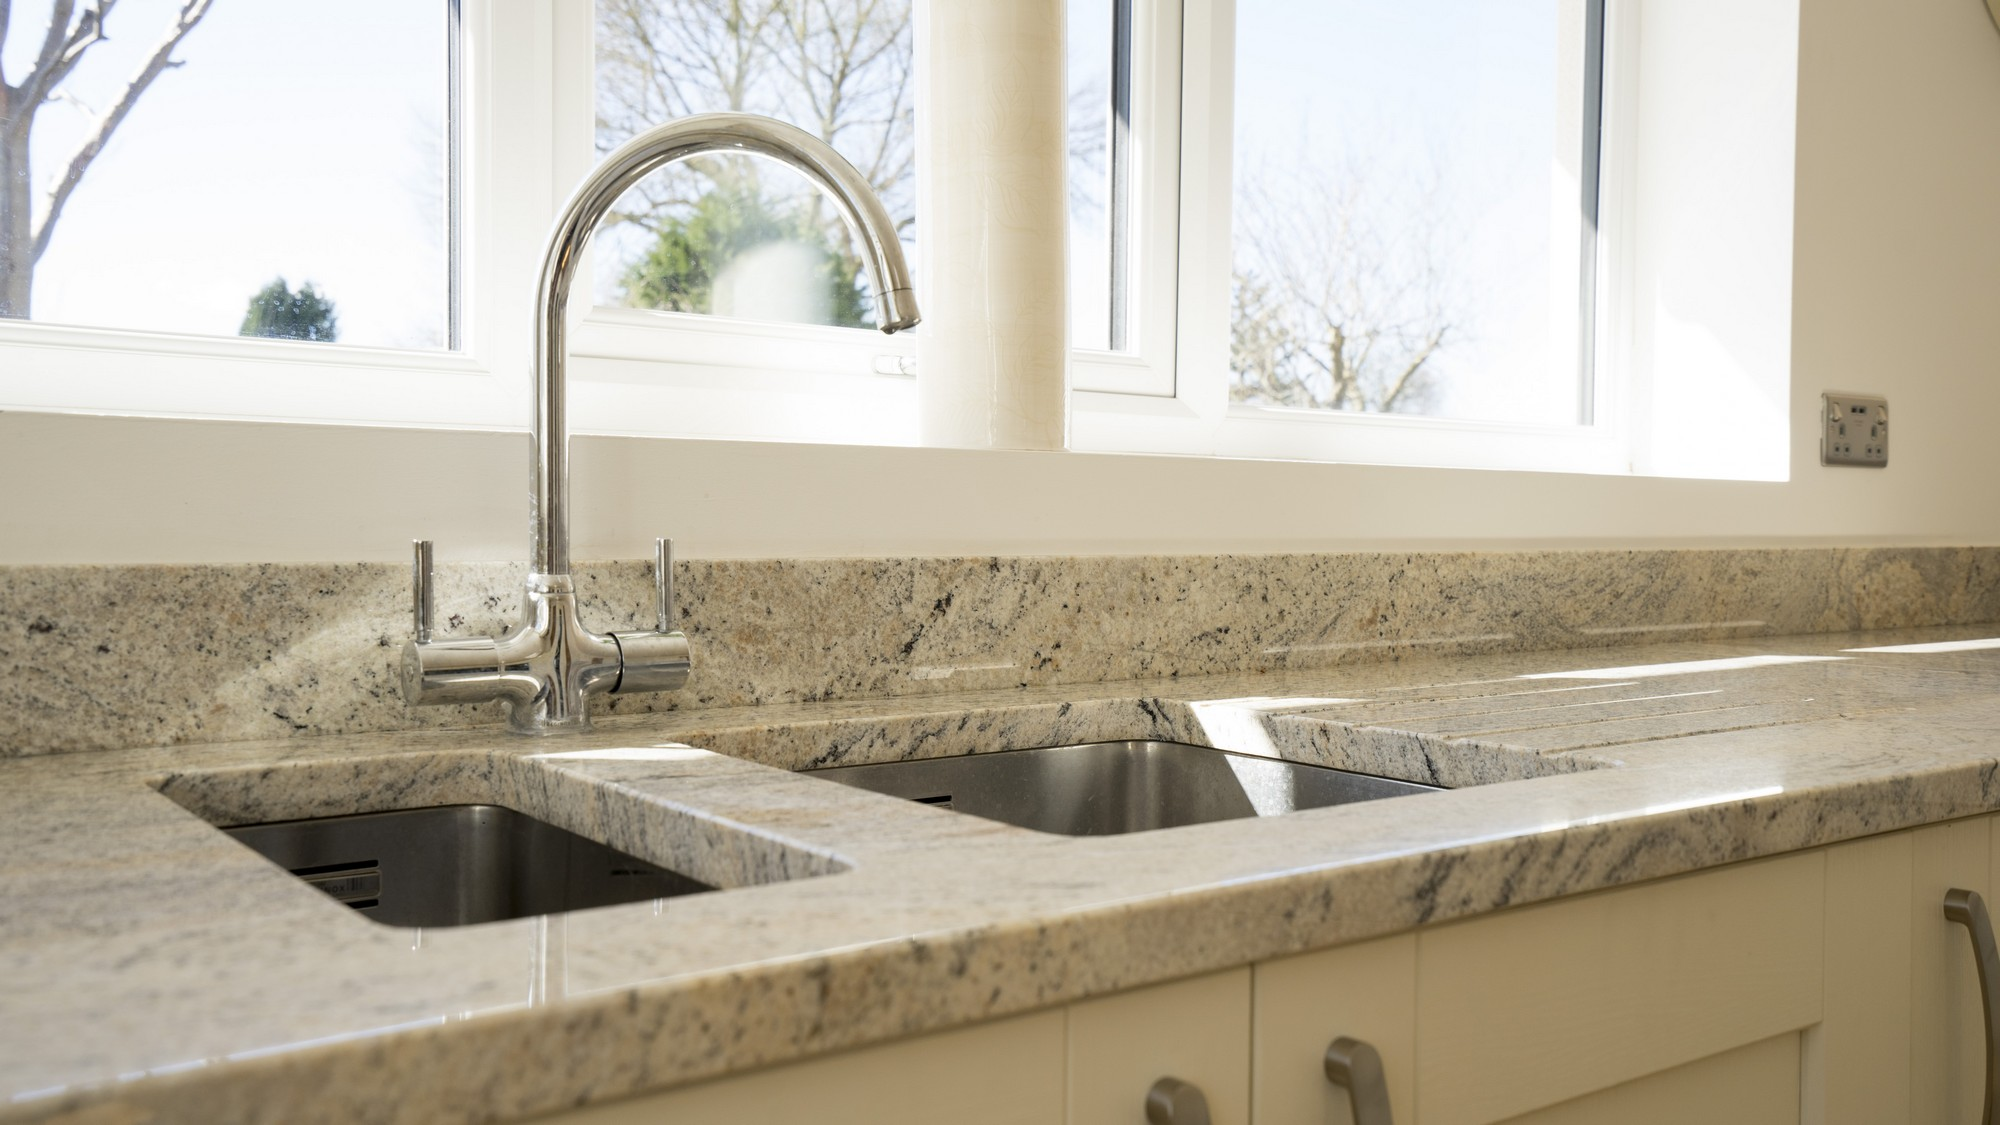 Close up of the stainless steel sink and tap, under-mounted to the granite worktops.